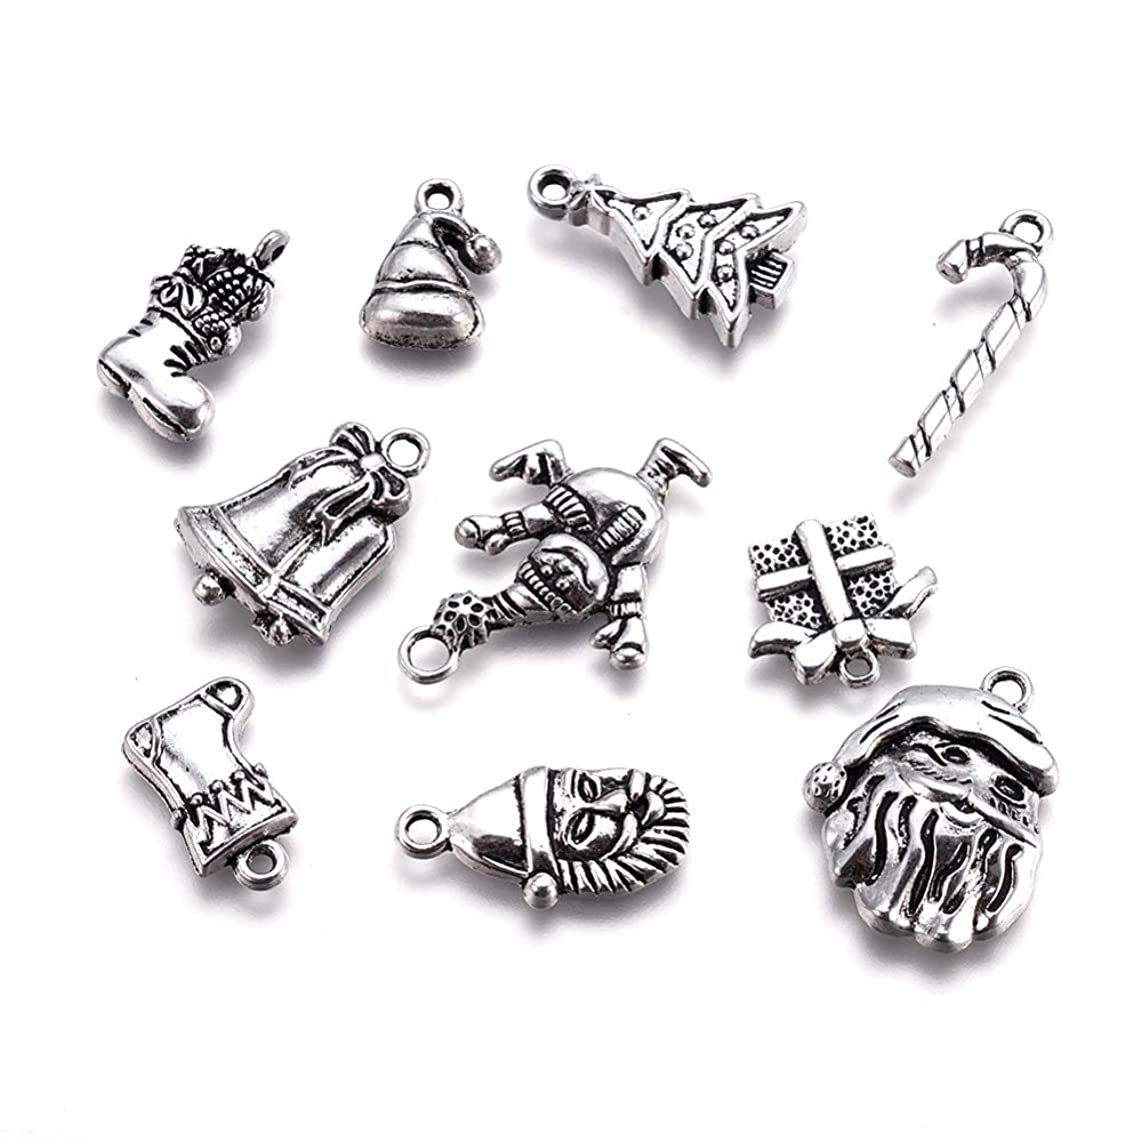 Kissitty 30Pcs Tibetan Antique Silver Christmas Theme Charms Collections Mixed Metal 10 Styles Snowman Santa Claus Sleigh Candy Cane Bell Christmas Tree Pendants 16~29x9~19.5mm